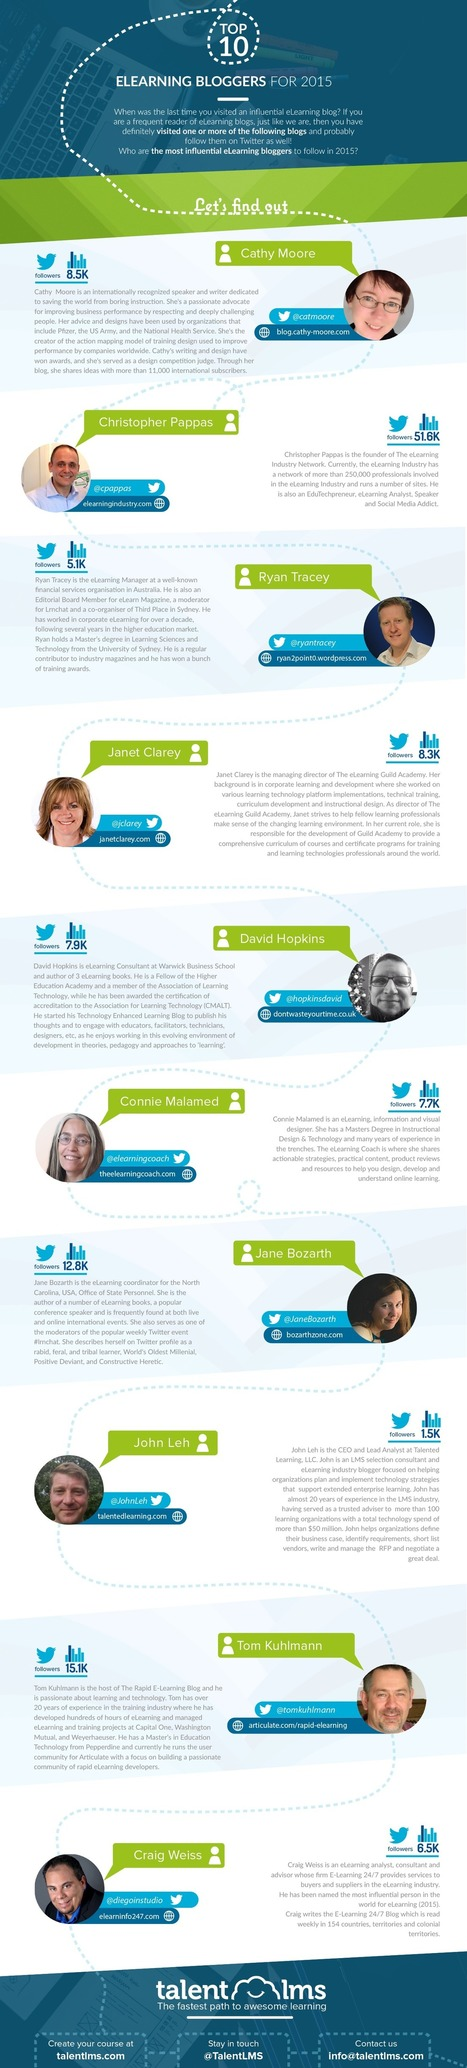 Top 10 eLearning Bloggers For 2015 [Infographic] - TalentLMS Blog - eLearning | Instructional Design | LMS | Educomunicación | Scoop.it